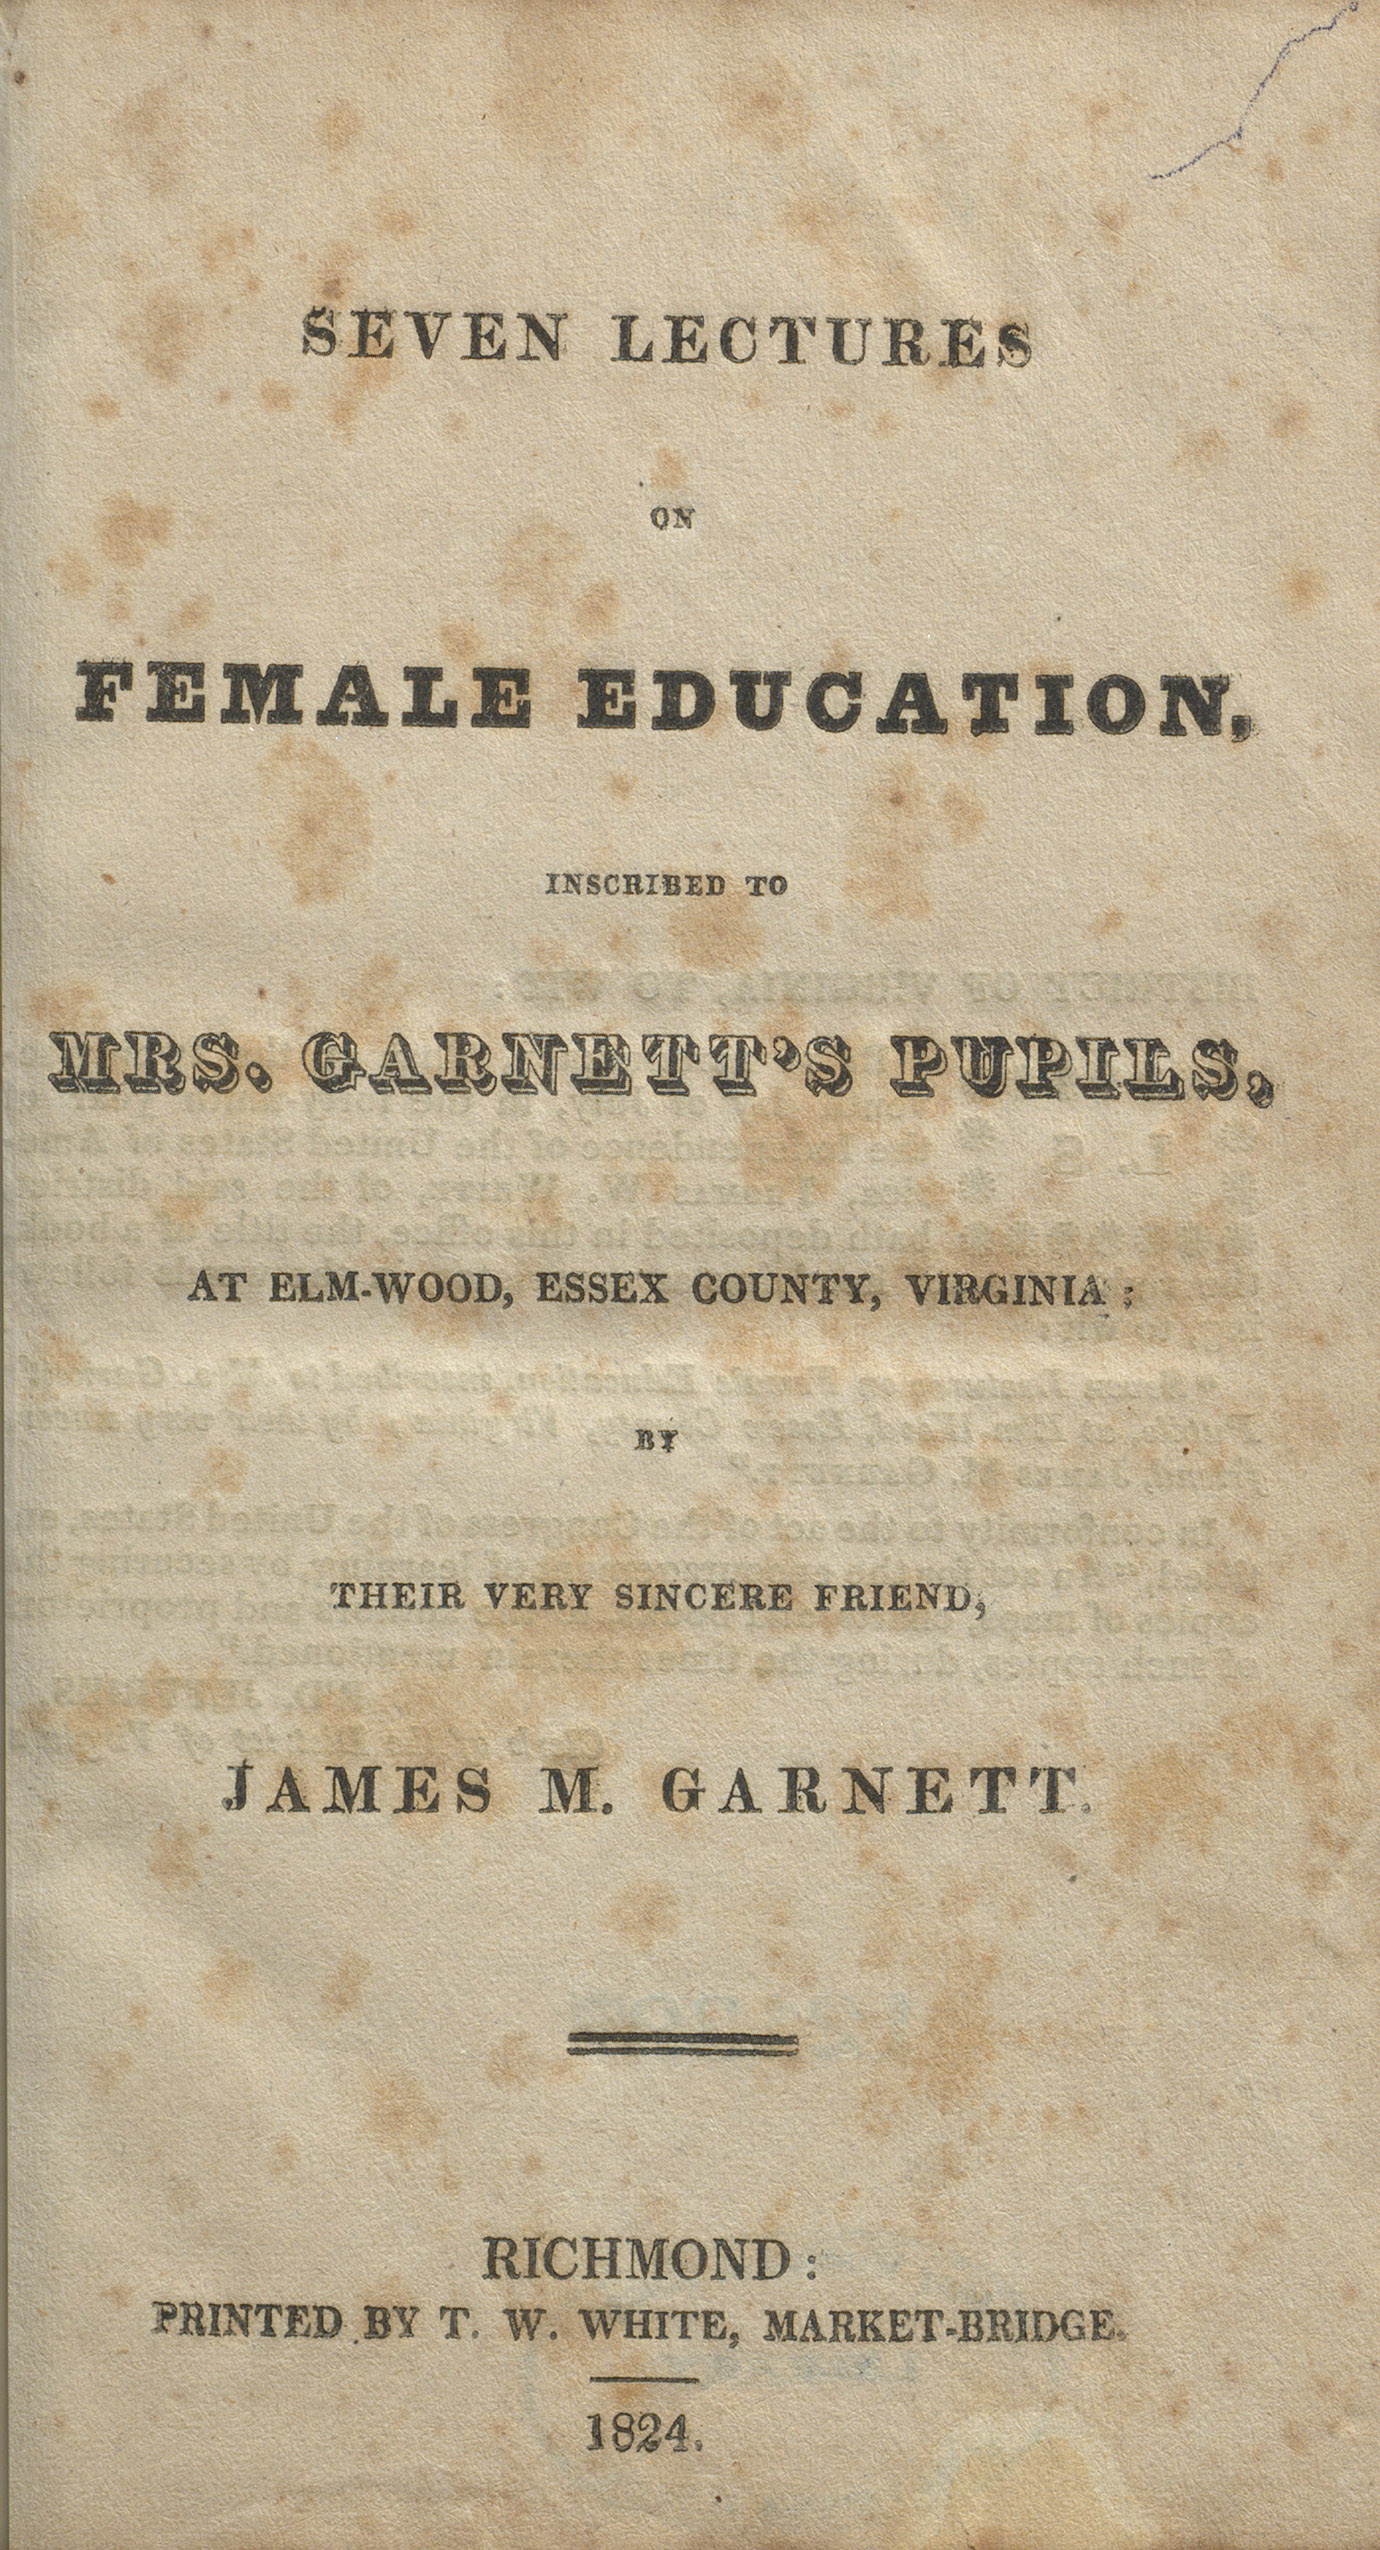 UMW_Seven Lectures on Female_Education title page.jpg